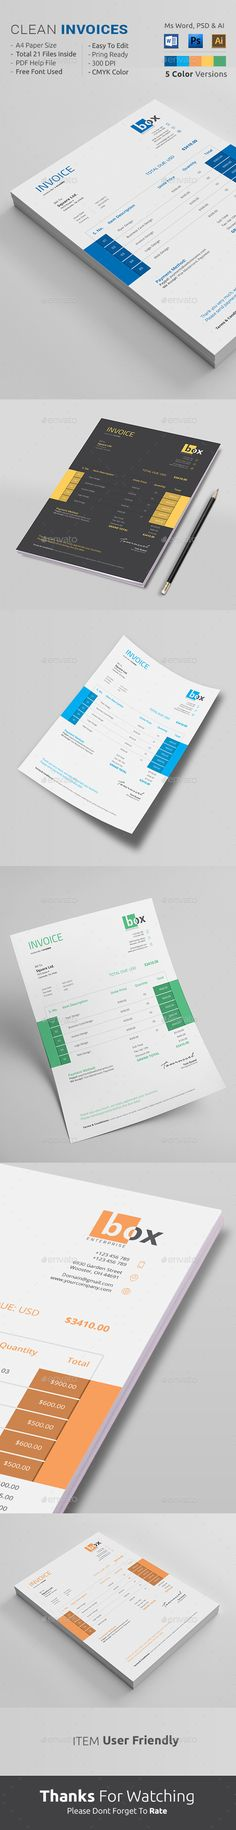 91 best Invoices images on Pinterest in 2018   Invoice design     easy to edit advertising agency invoice template Simple Invoice Template   AI   PSD  by Raymar Lobaton  via Behance